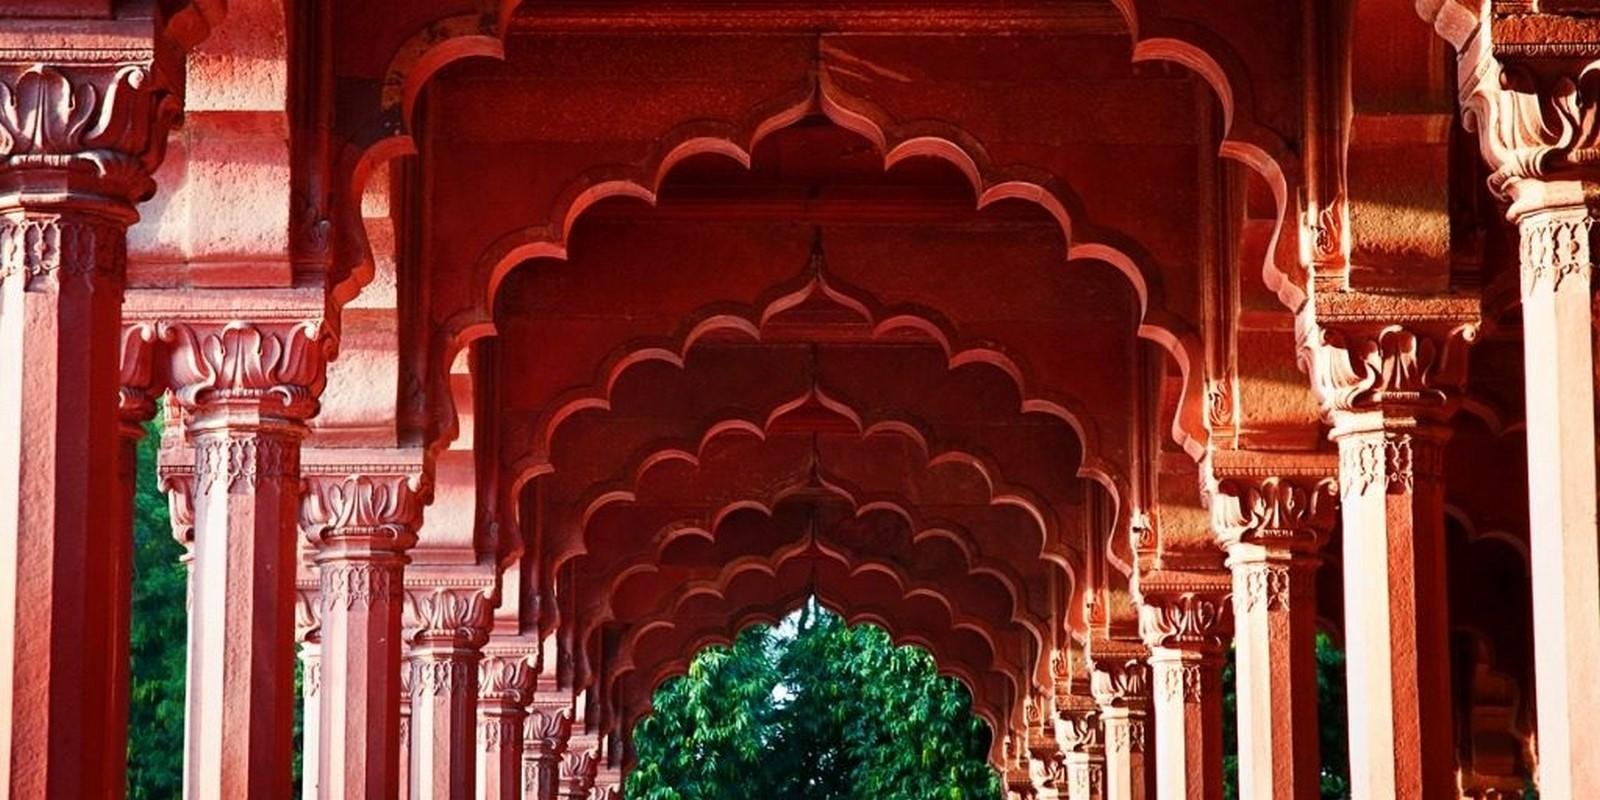 Revisiting the past: Indian independence and Architecture - Sheet2